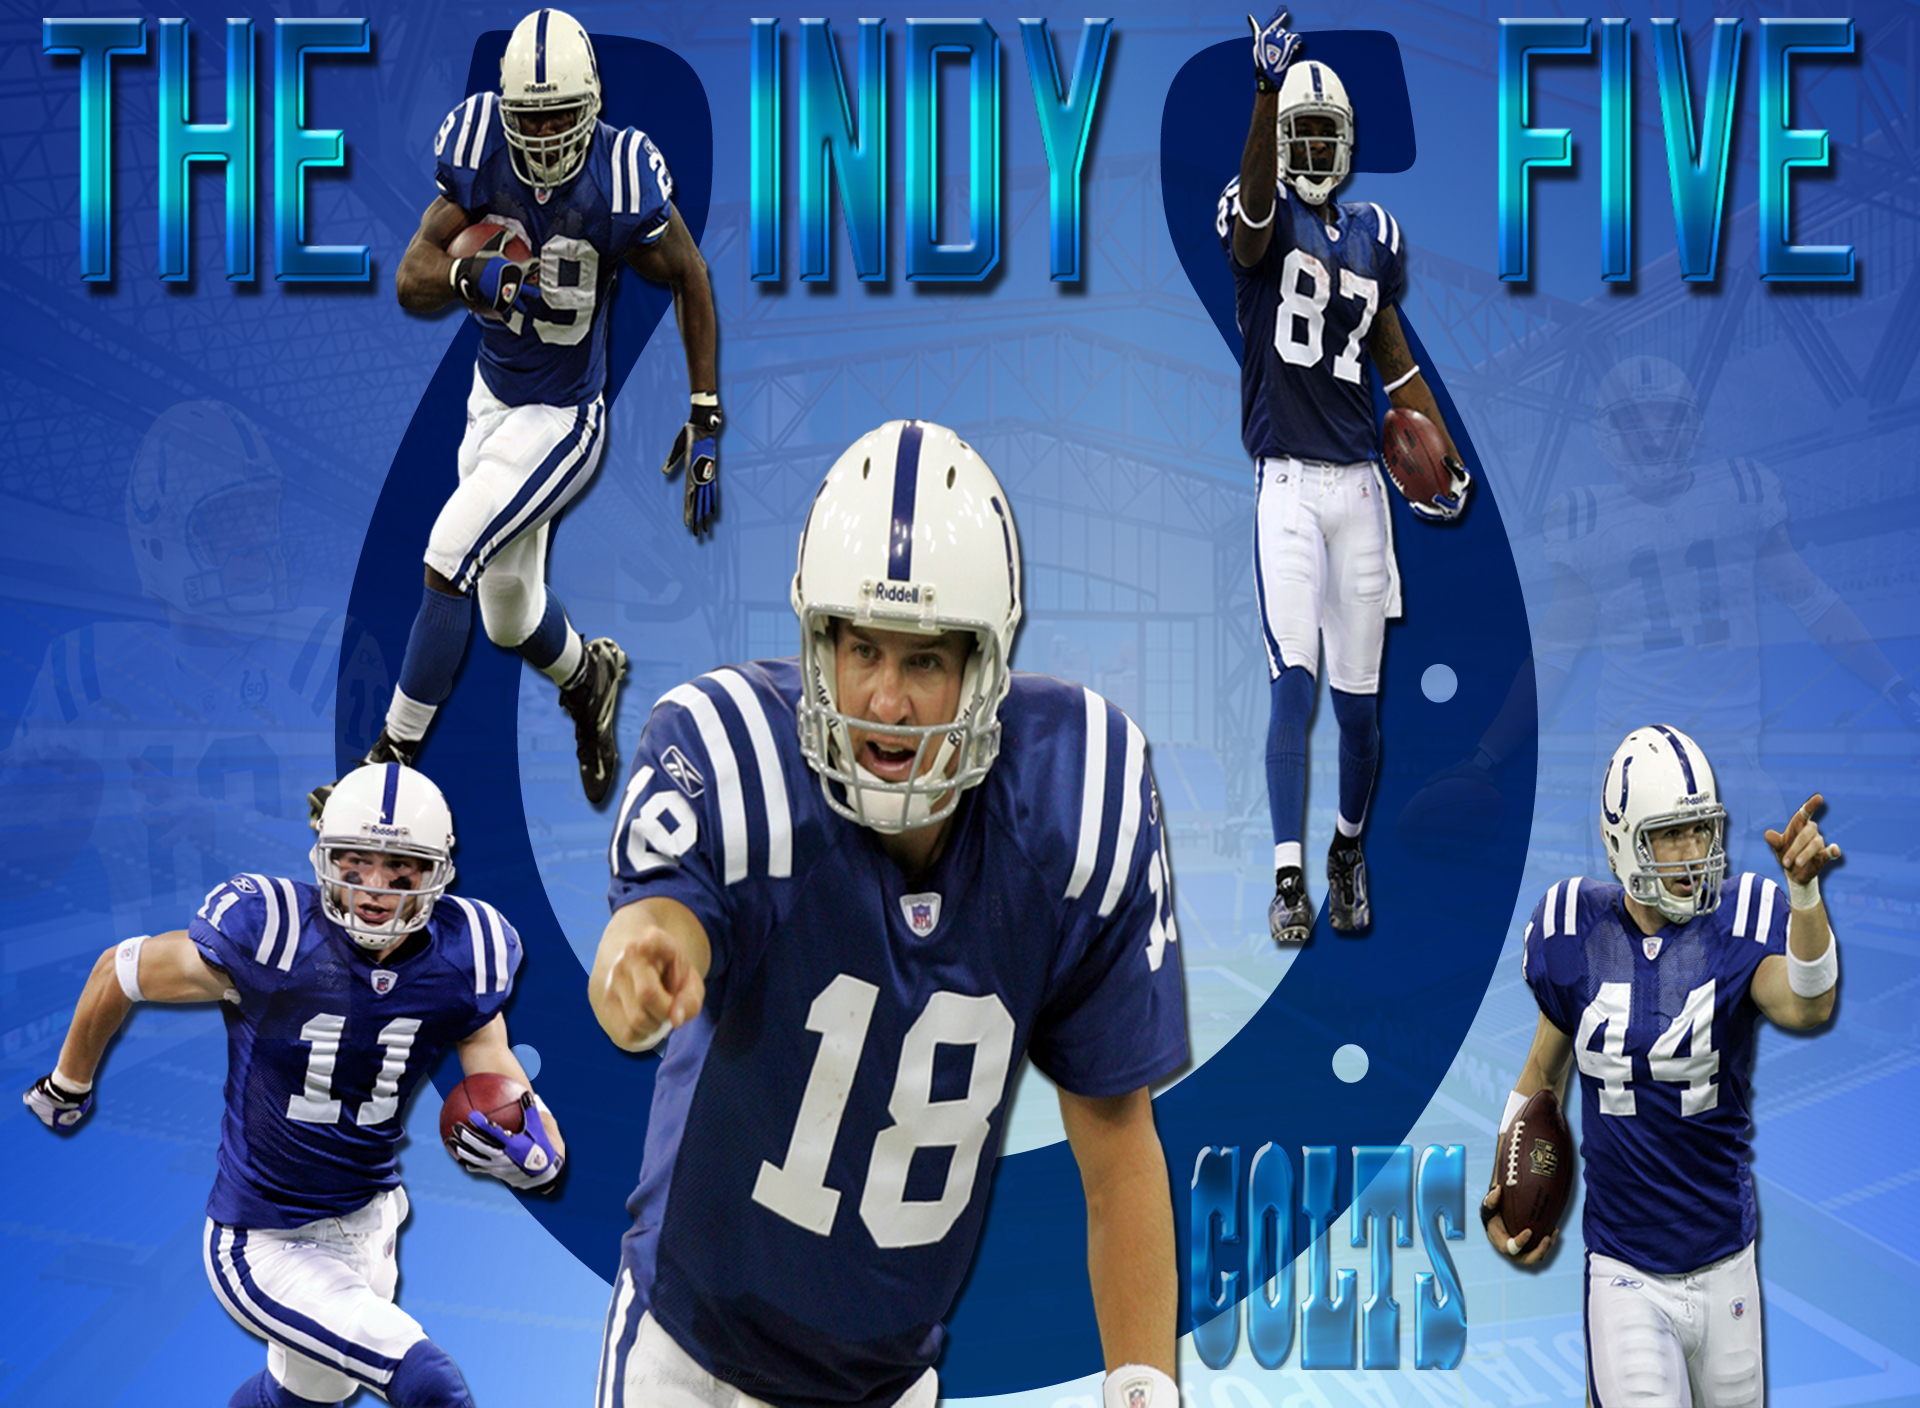 the 2005 indianapolis colts essay View the 2005 indianapolis colts schedule, results and scores for regular season, preseason and postseason nfl games.